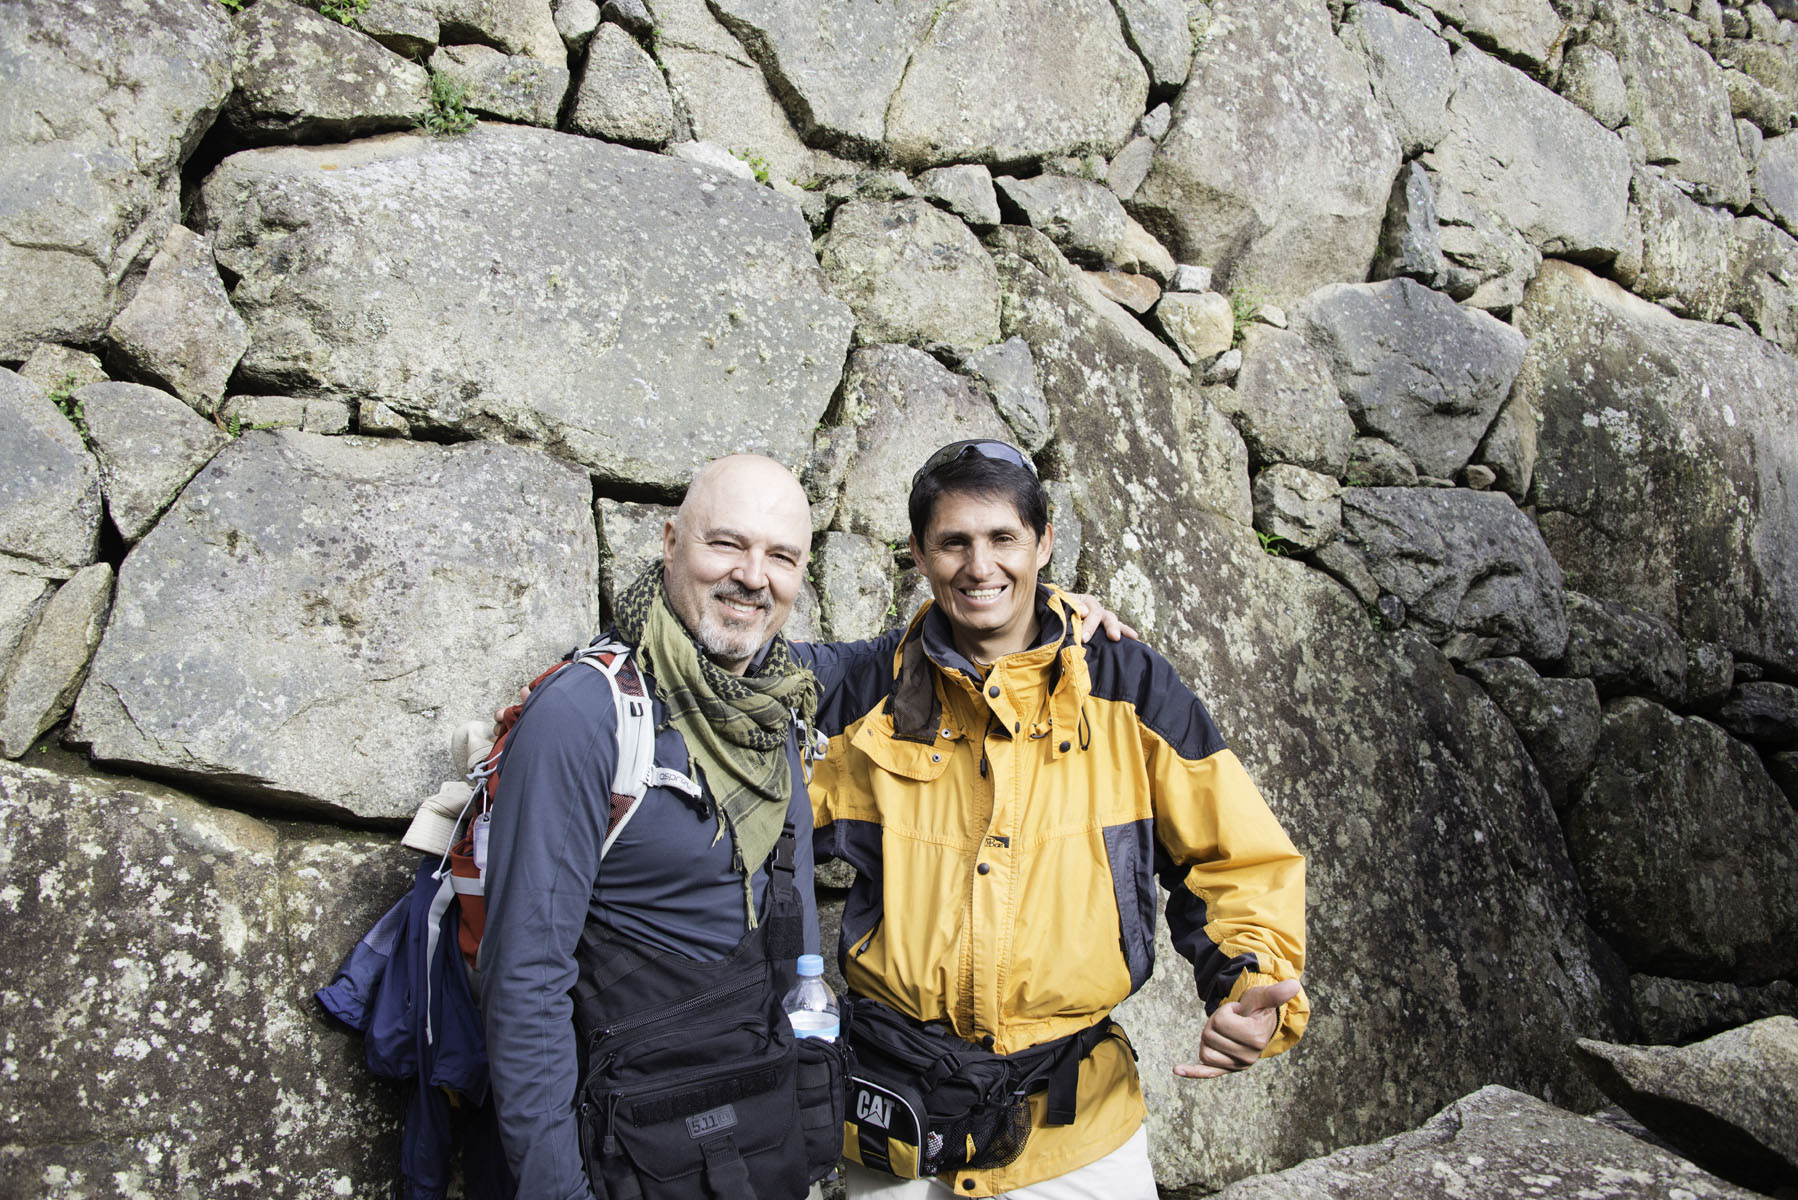 Male Hikers at Machu Picchu